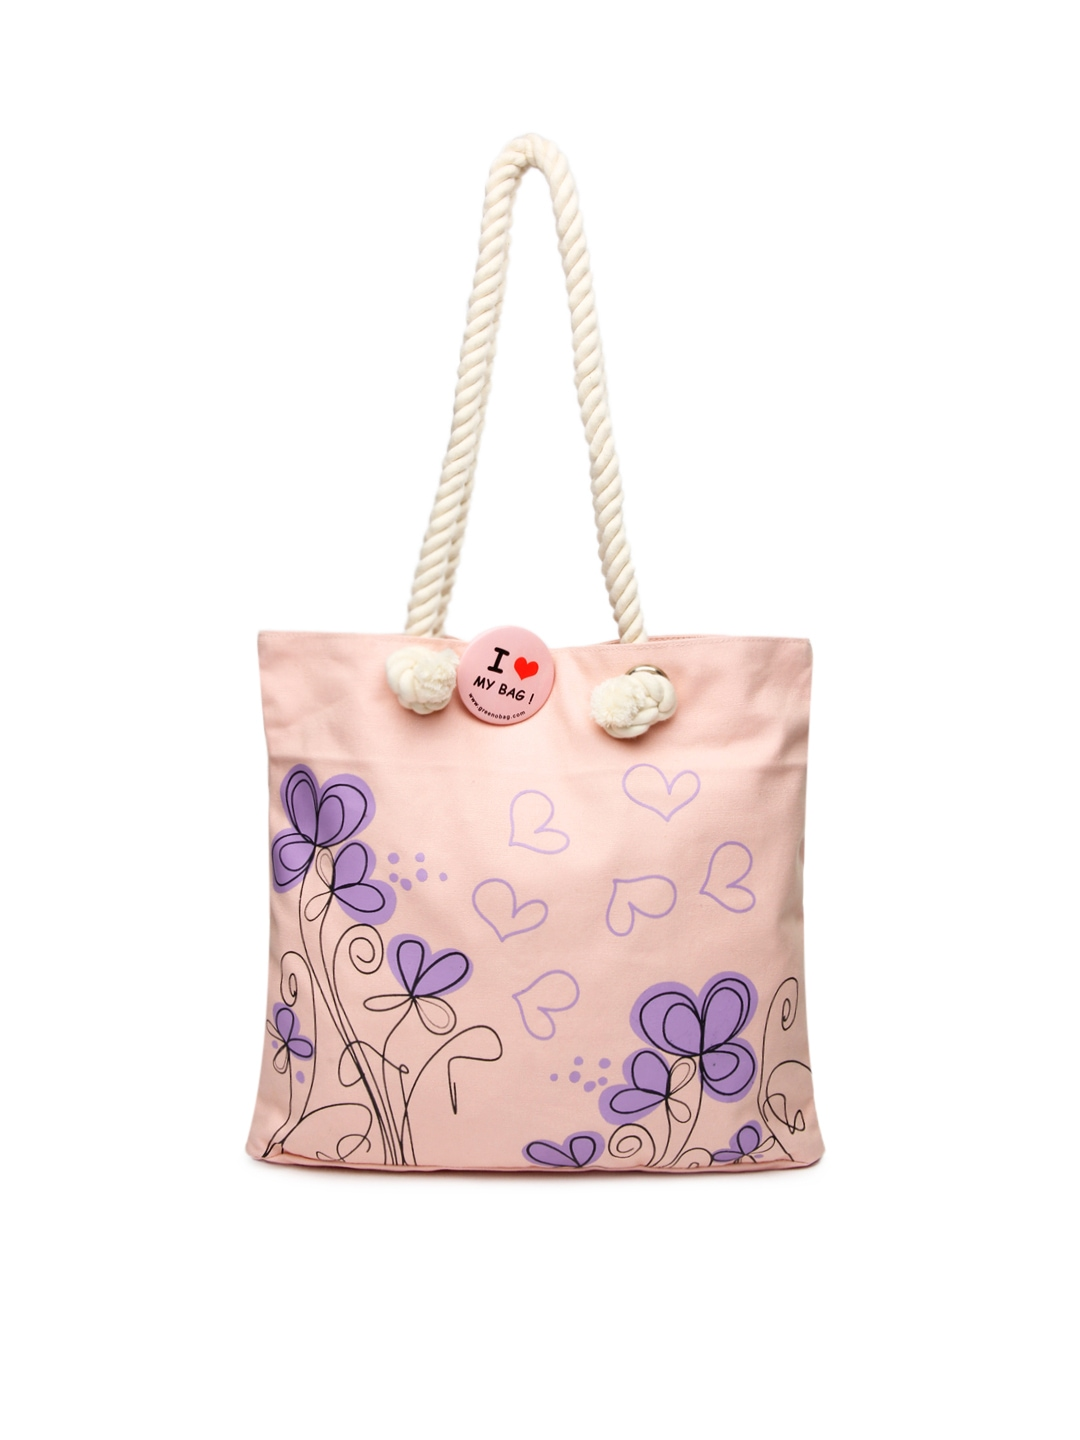 light pink printed tote bag 478332 buy myntra greenobag tote bags. Black Bedroom Furniture Sets. Home Design Ideas